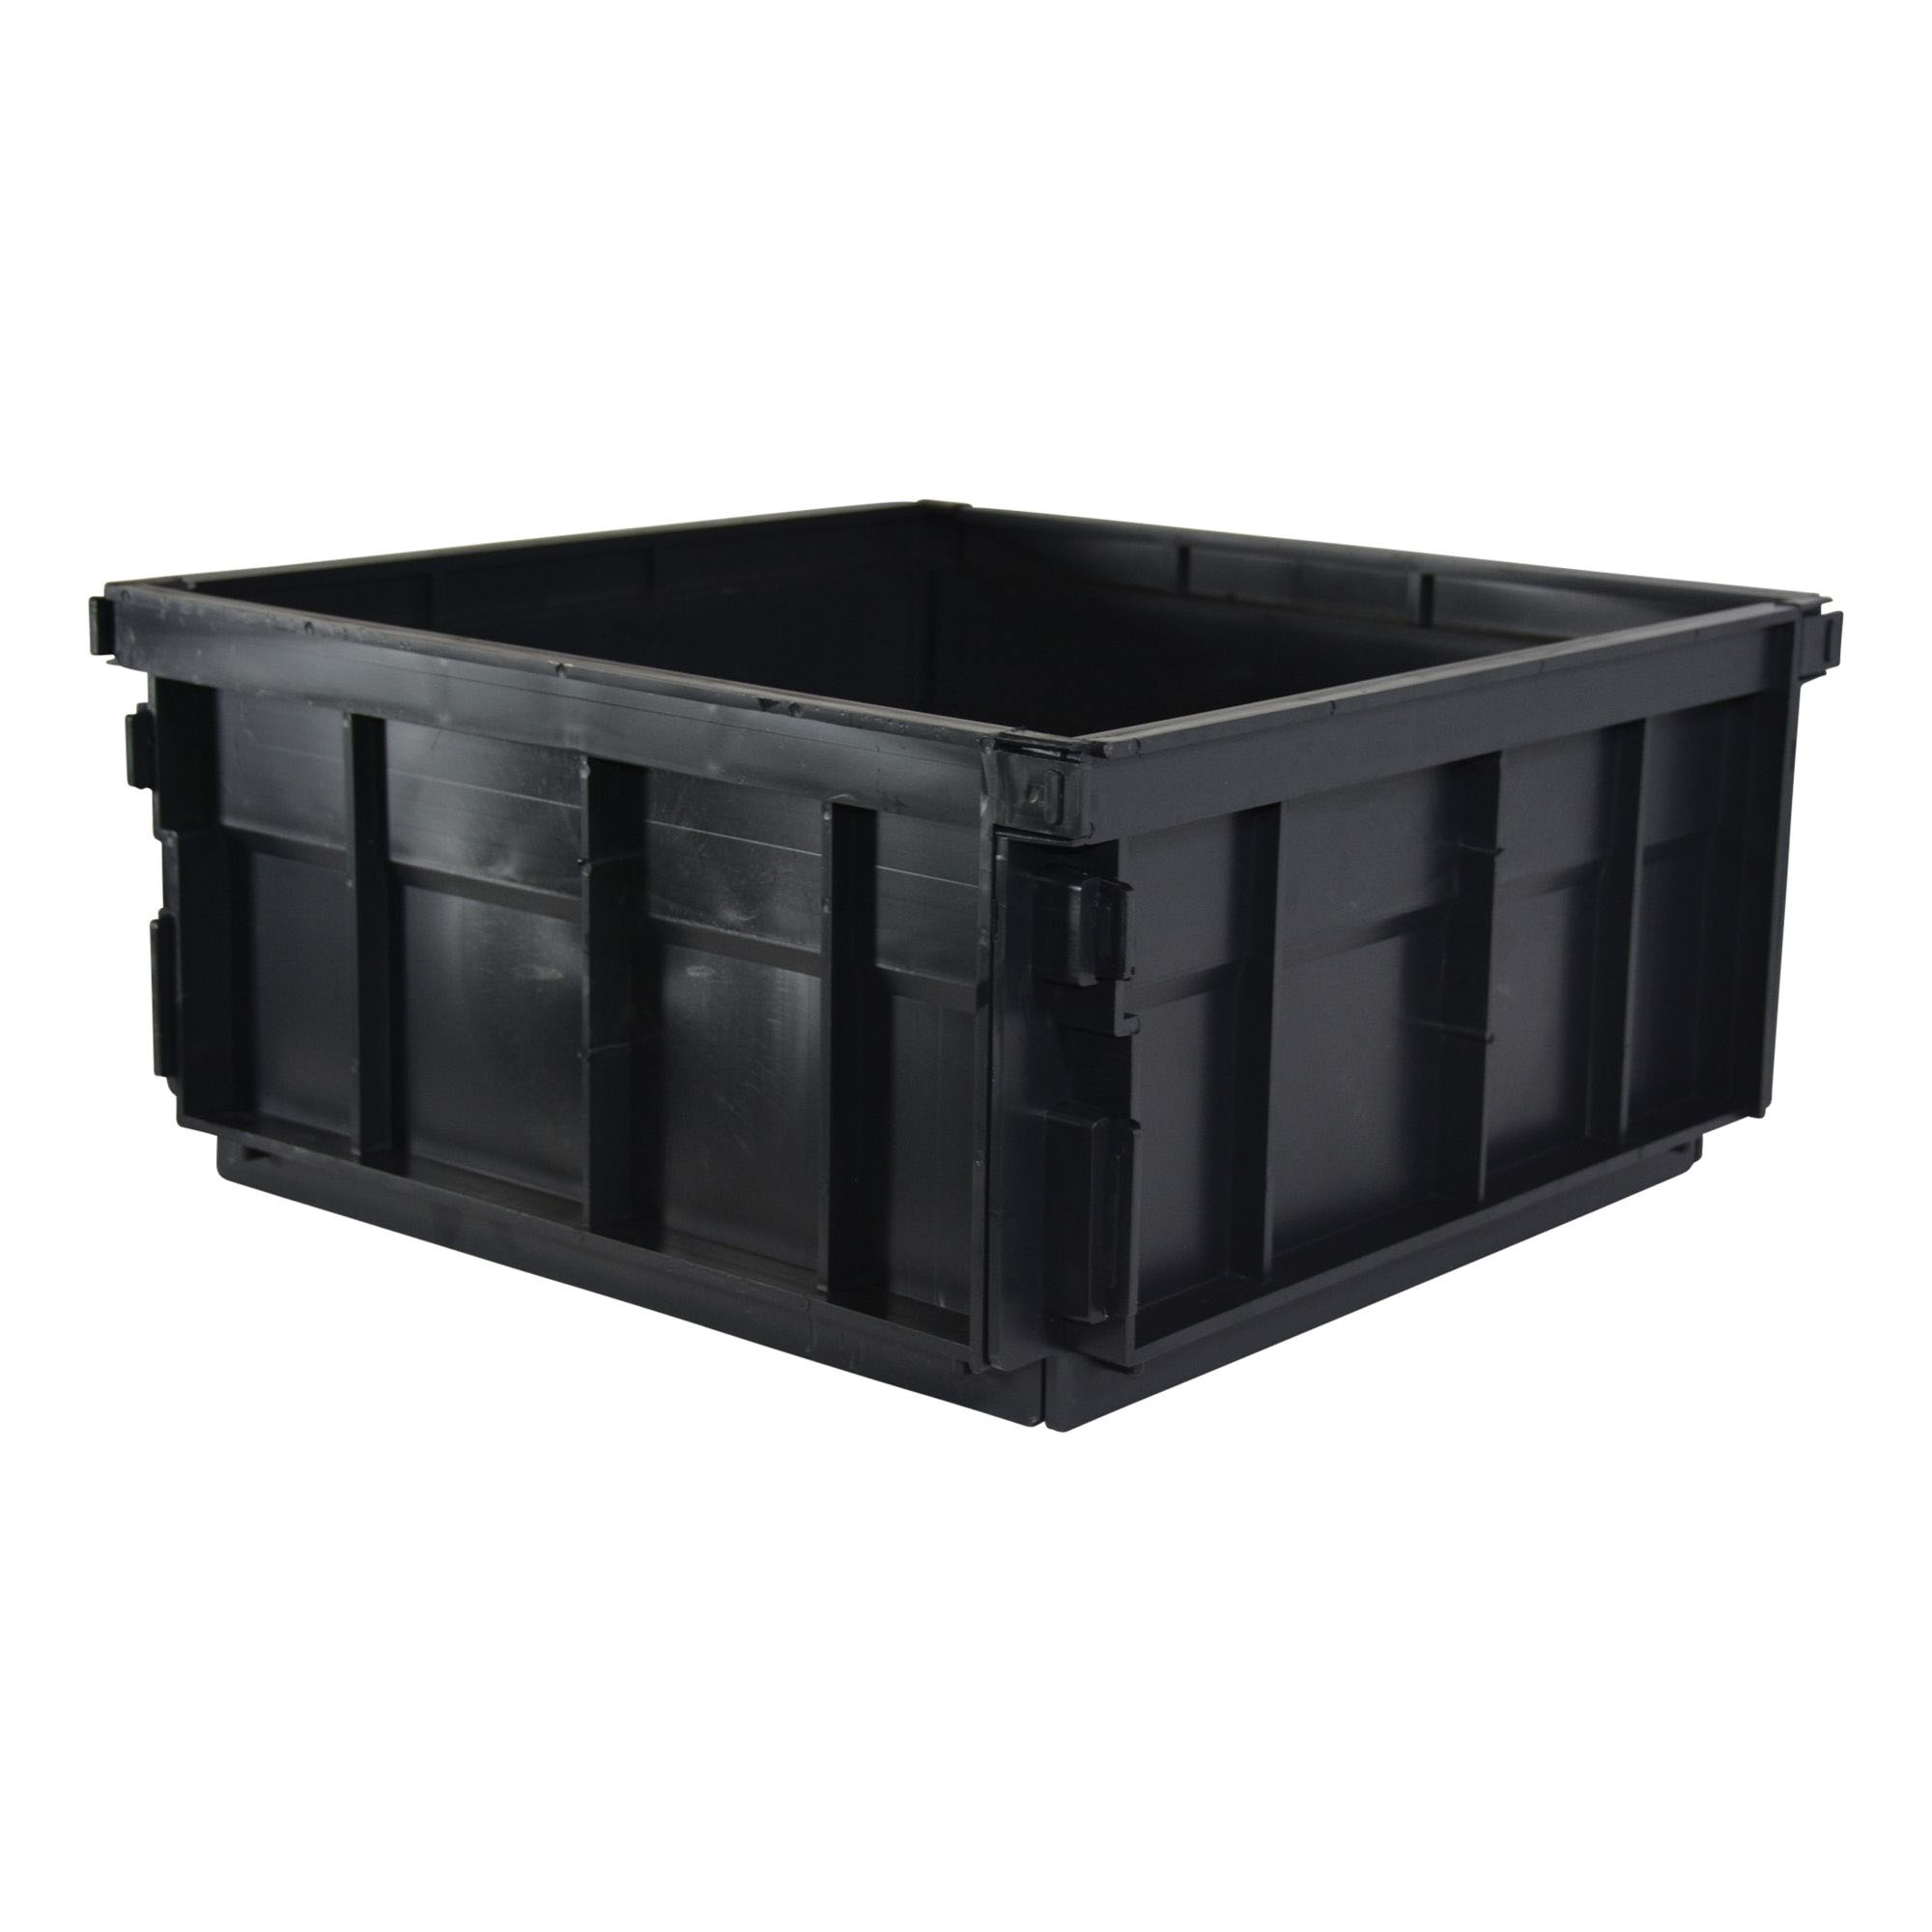 NDS® 1816 Black Styrene Riser for 1882, 1884 and 1800 Catch Basins, 18 in